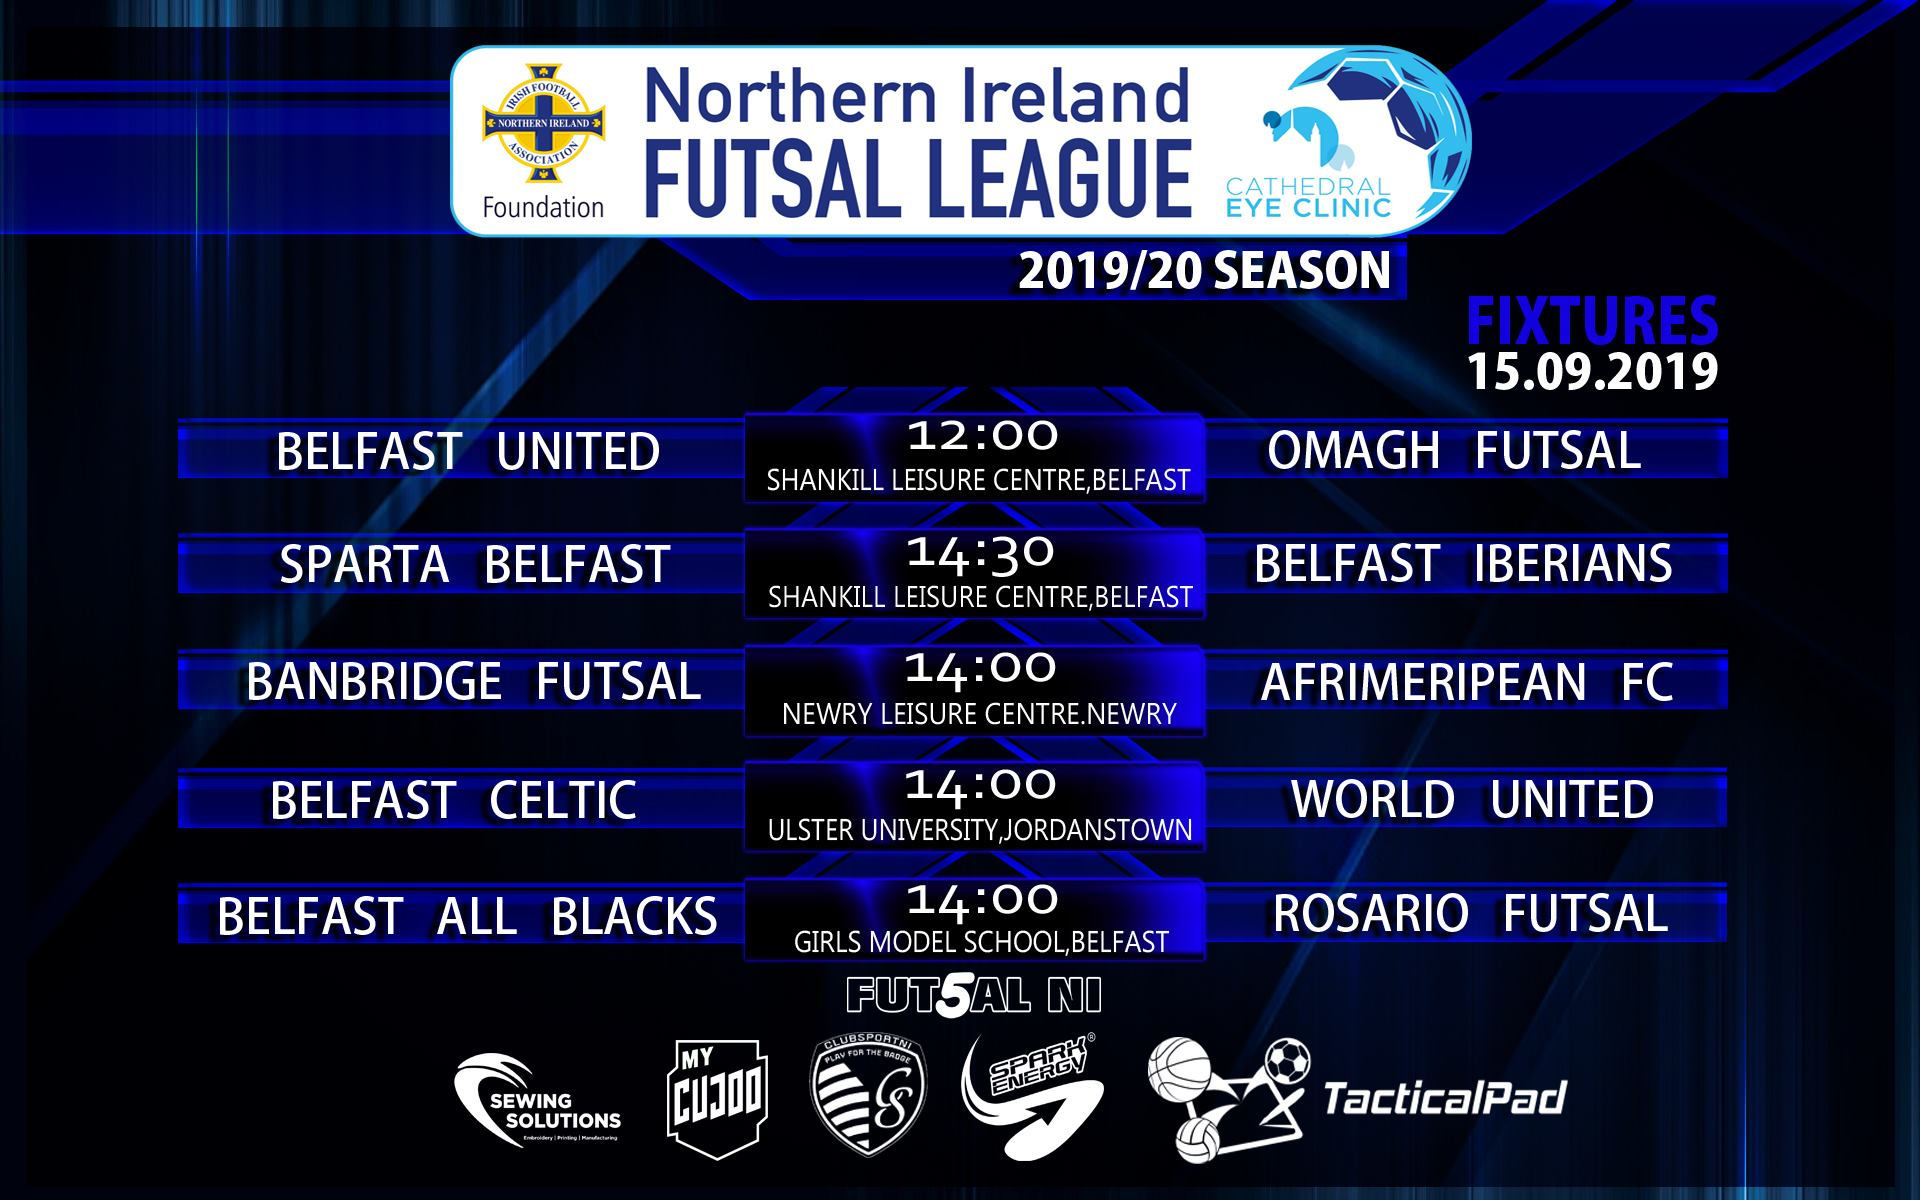 Cathedral Eye Clinic sponsors Northern Ireland National Futsal Development